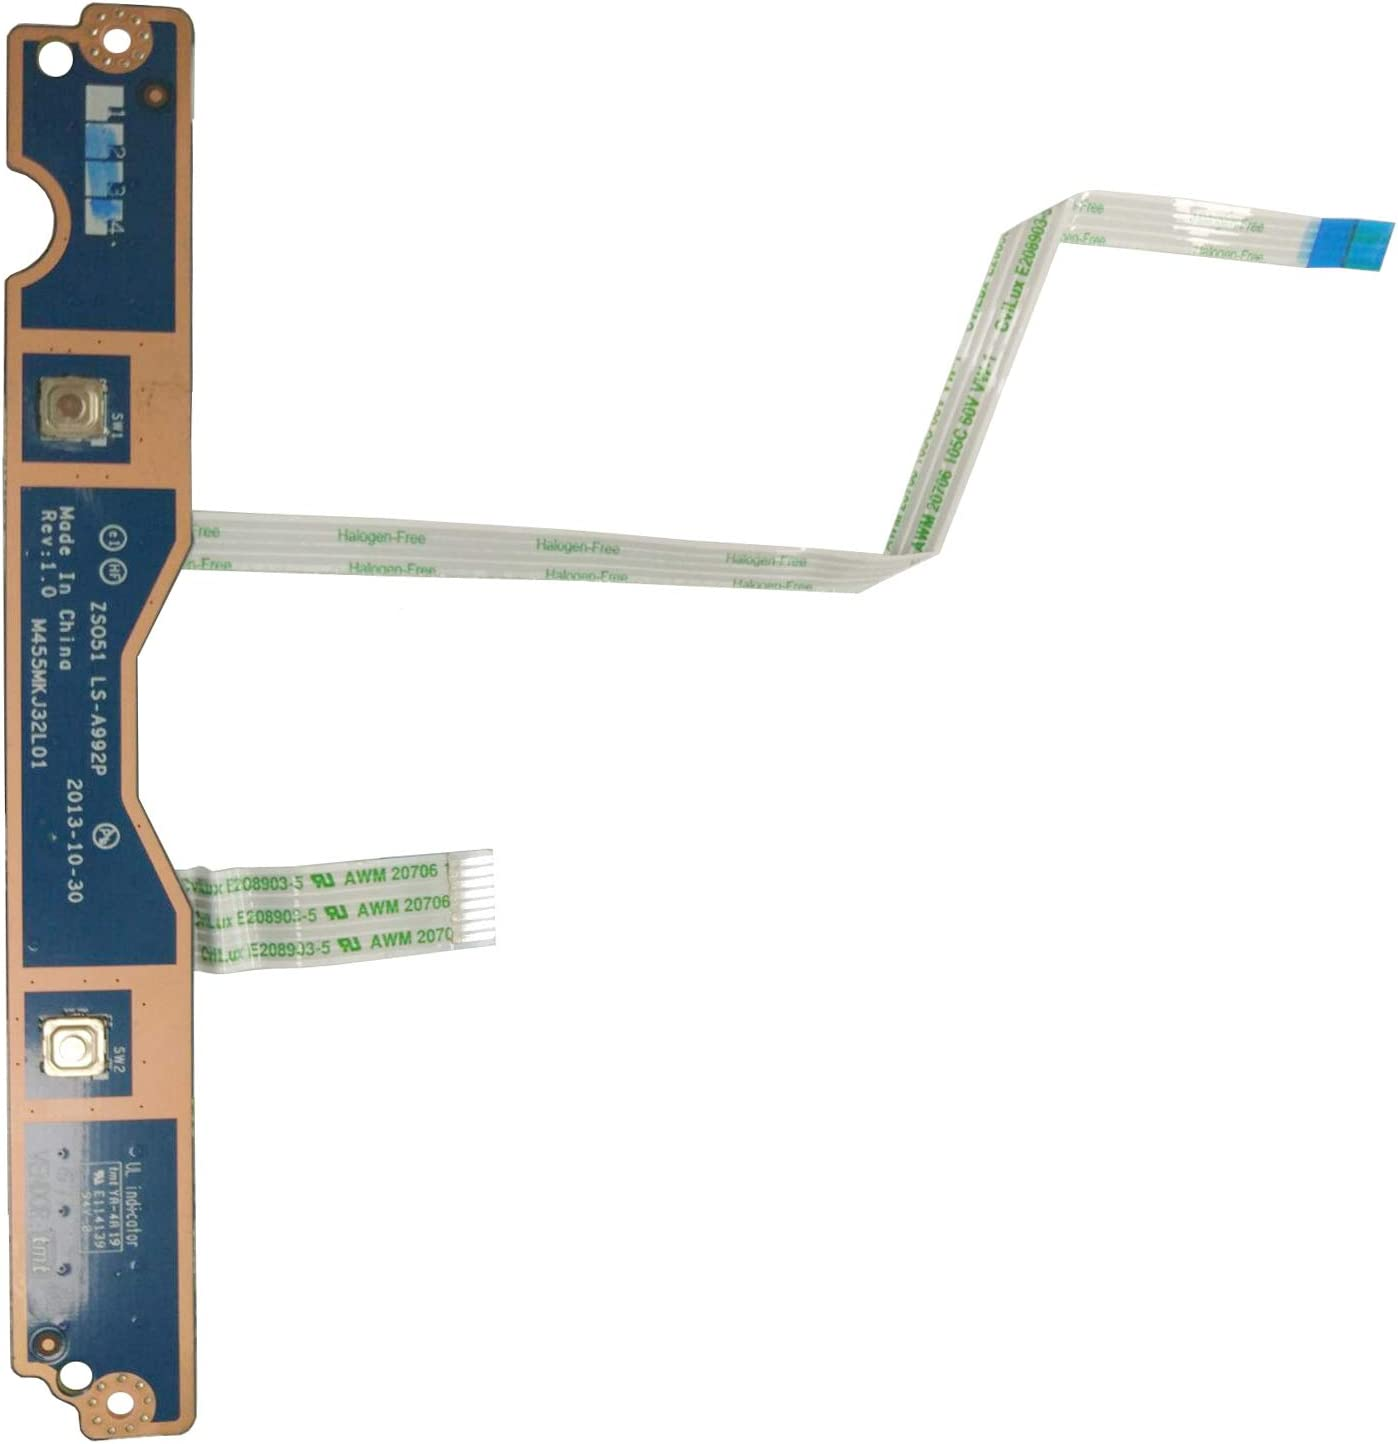 Todiys Touch Button Board for HP Pavilion 15-G 15-G000 15-G100 15-R 15-R000 15-R100 Series LS-A992P 15-G059WM 15-G173WM 15-R052NR 15-R132WM 15-R264DX M455MKJ32L01 ZSO51